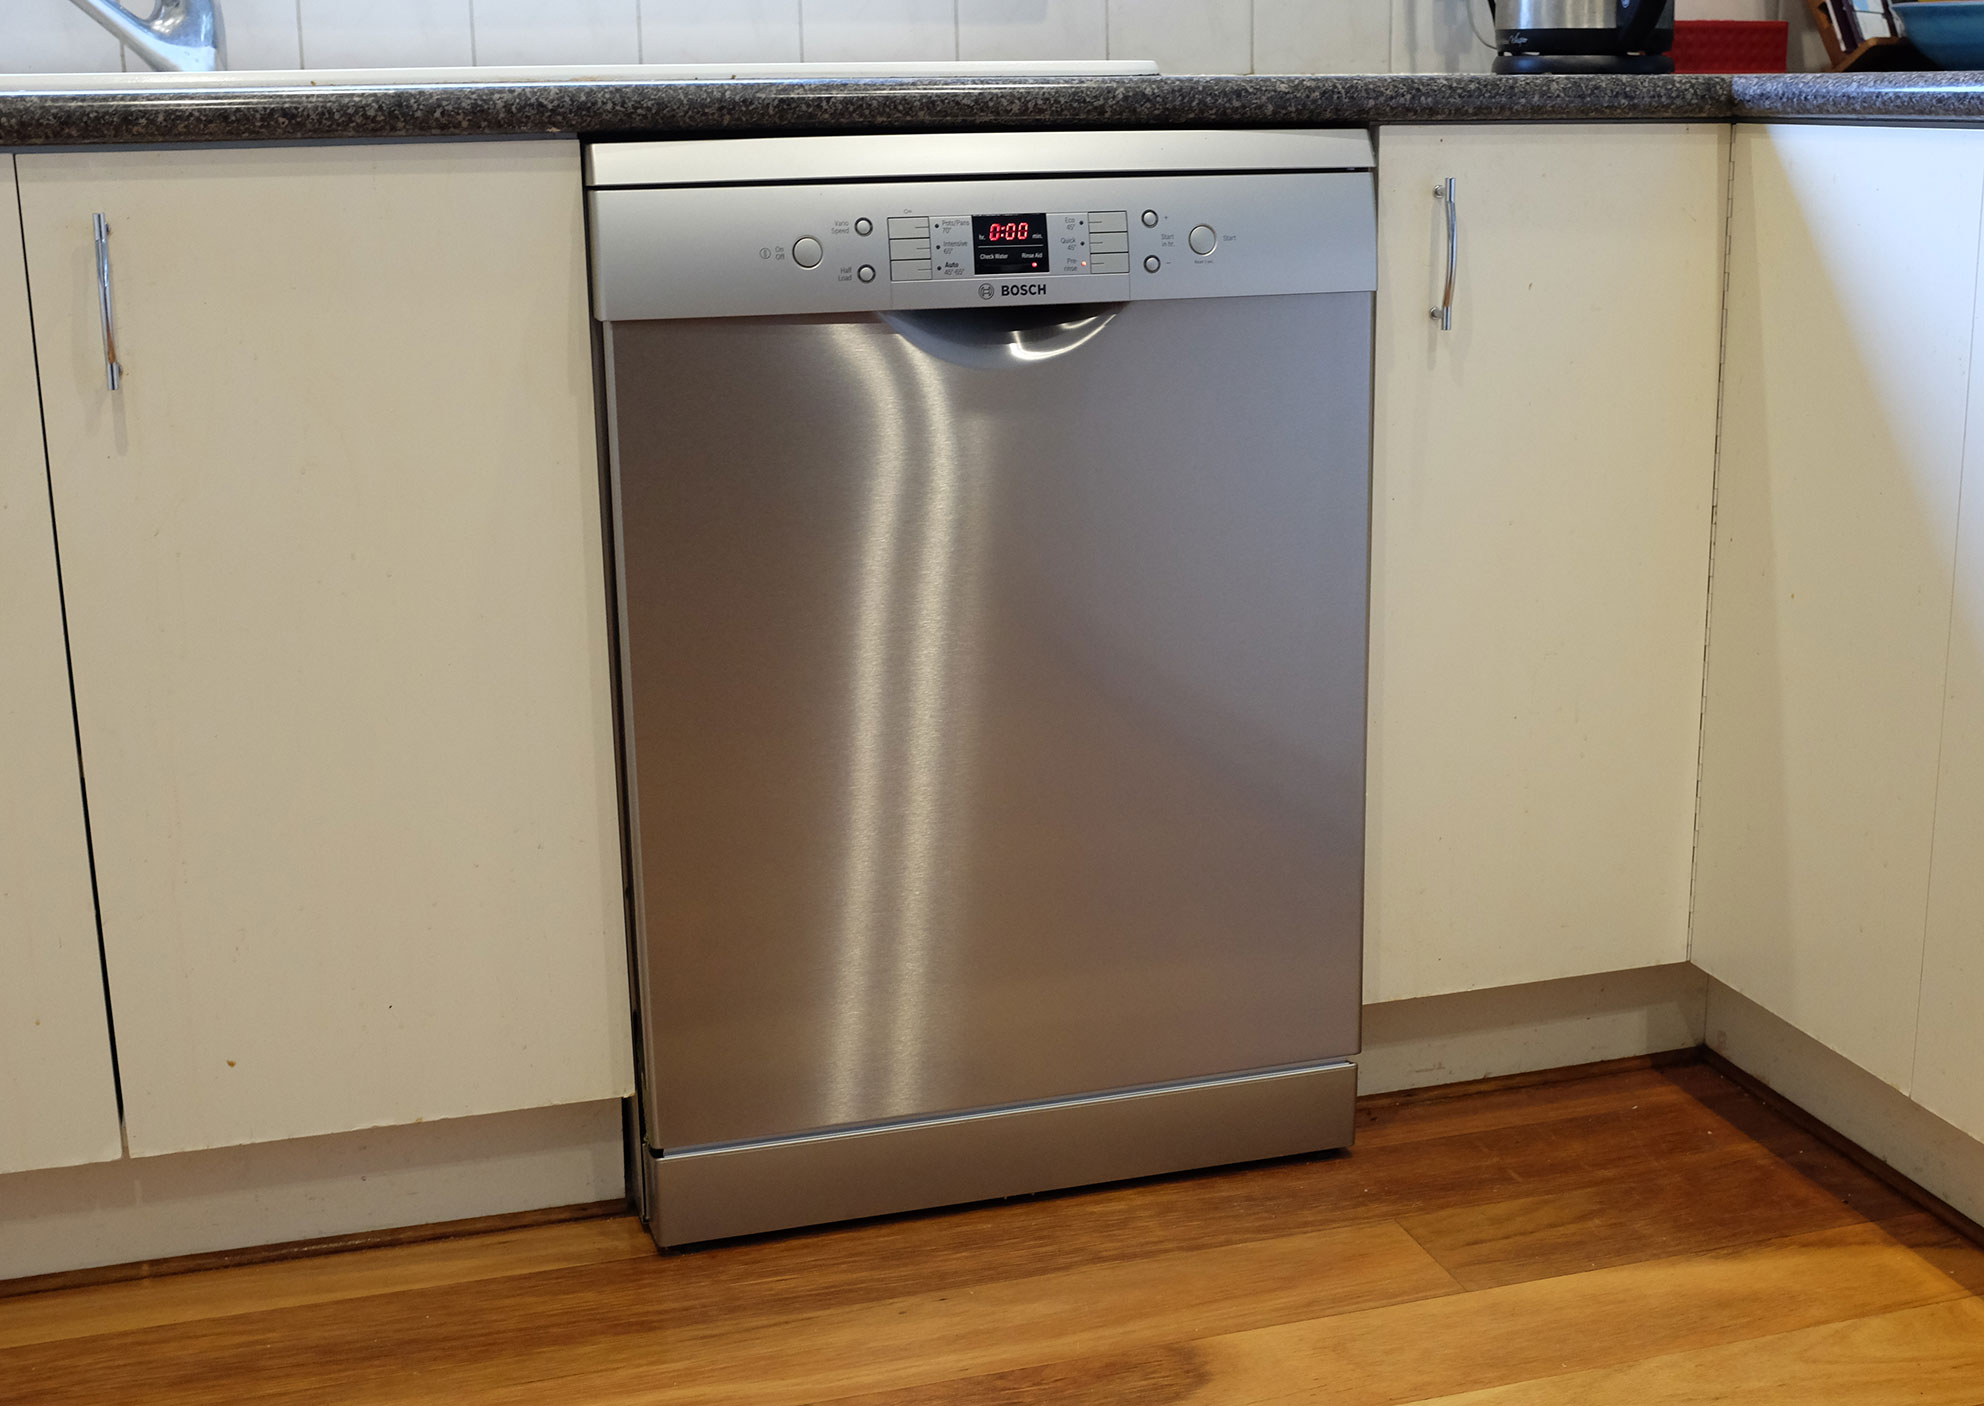 my friday five - reasons to have a dishwasher